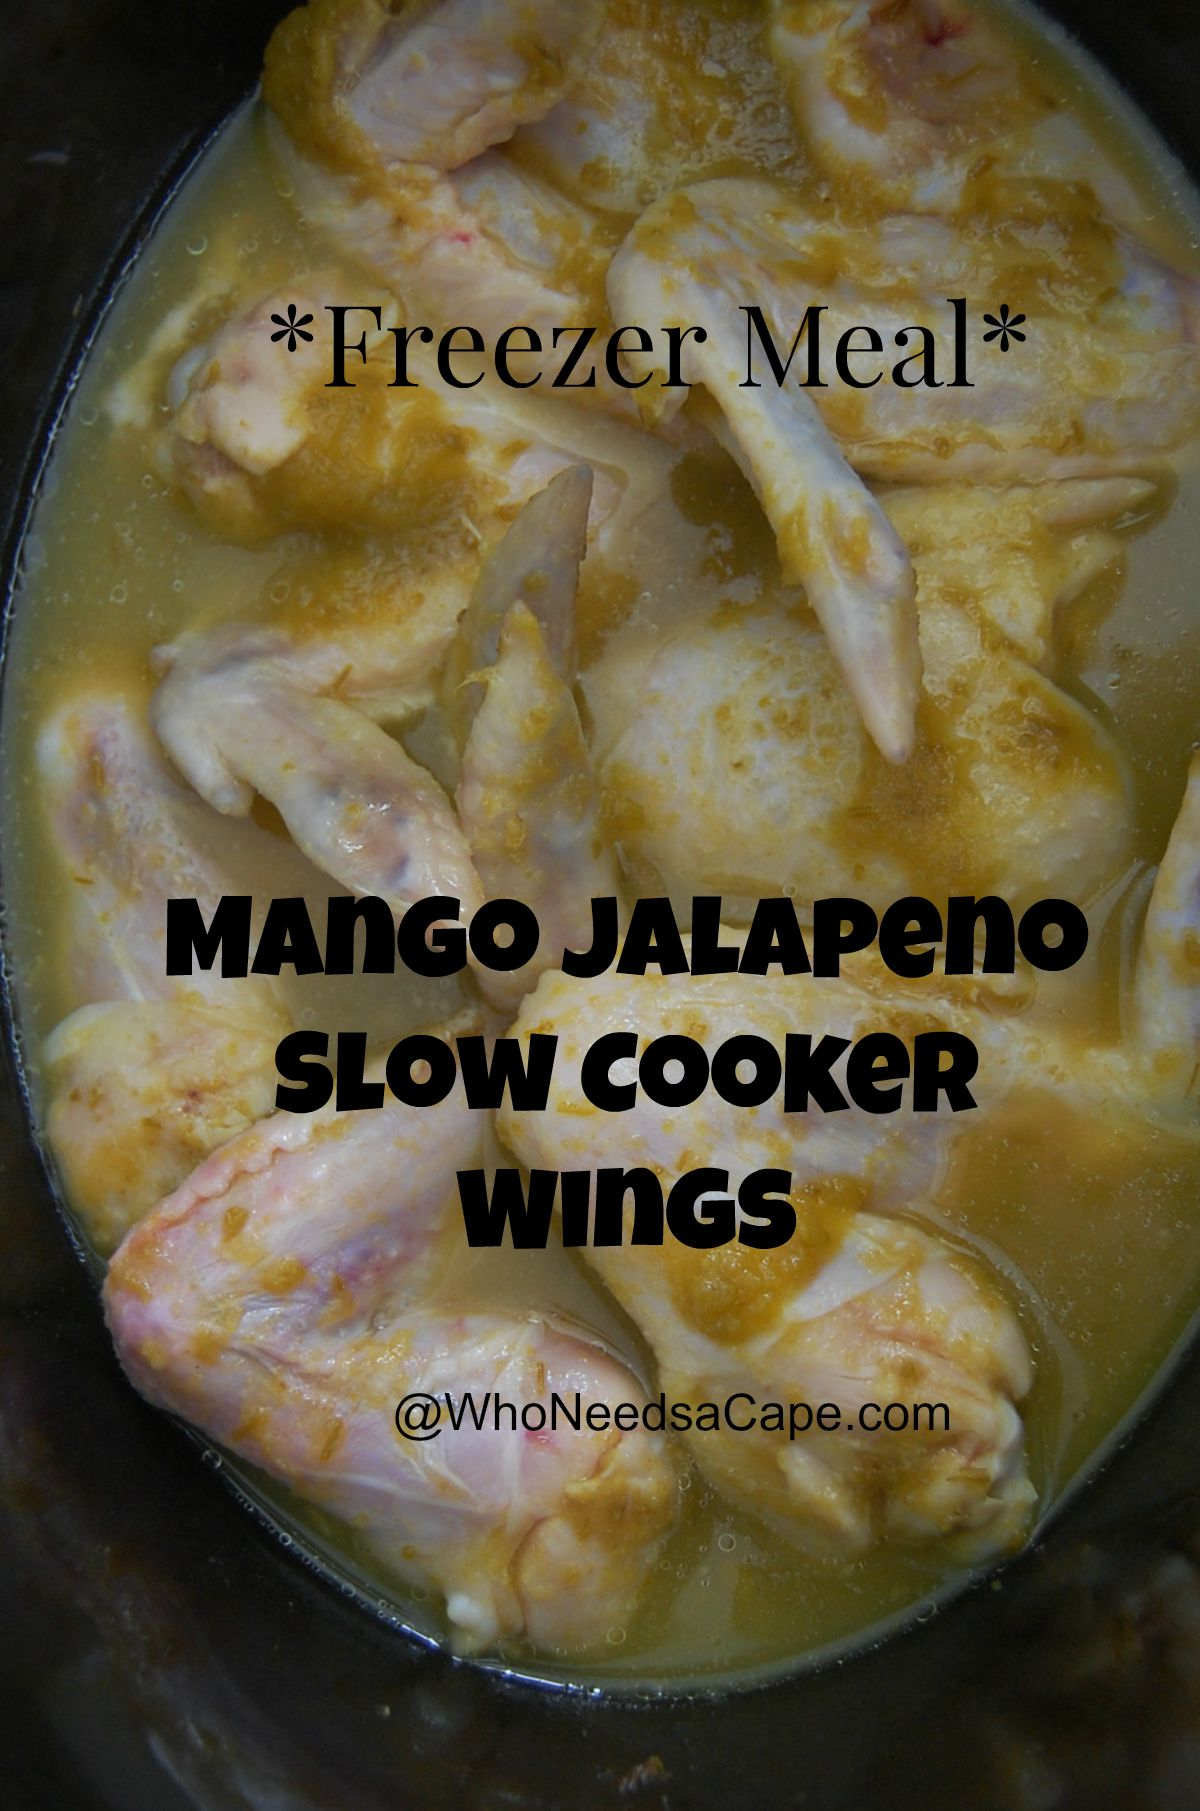 Mango Jalapeno Slow Cooker Wings Are So Delicious You Know I Love My Slow  Cooker,